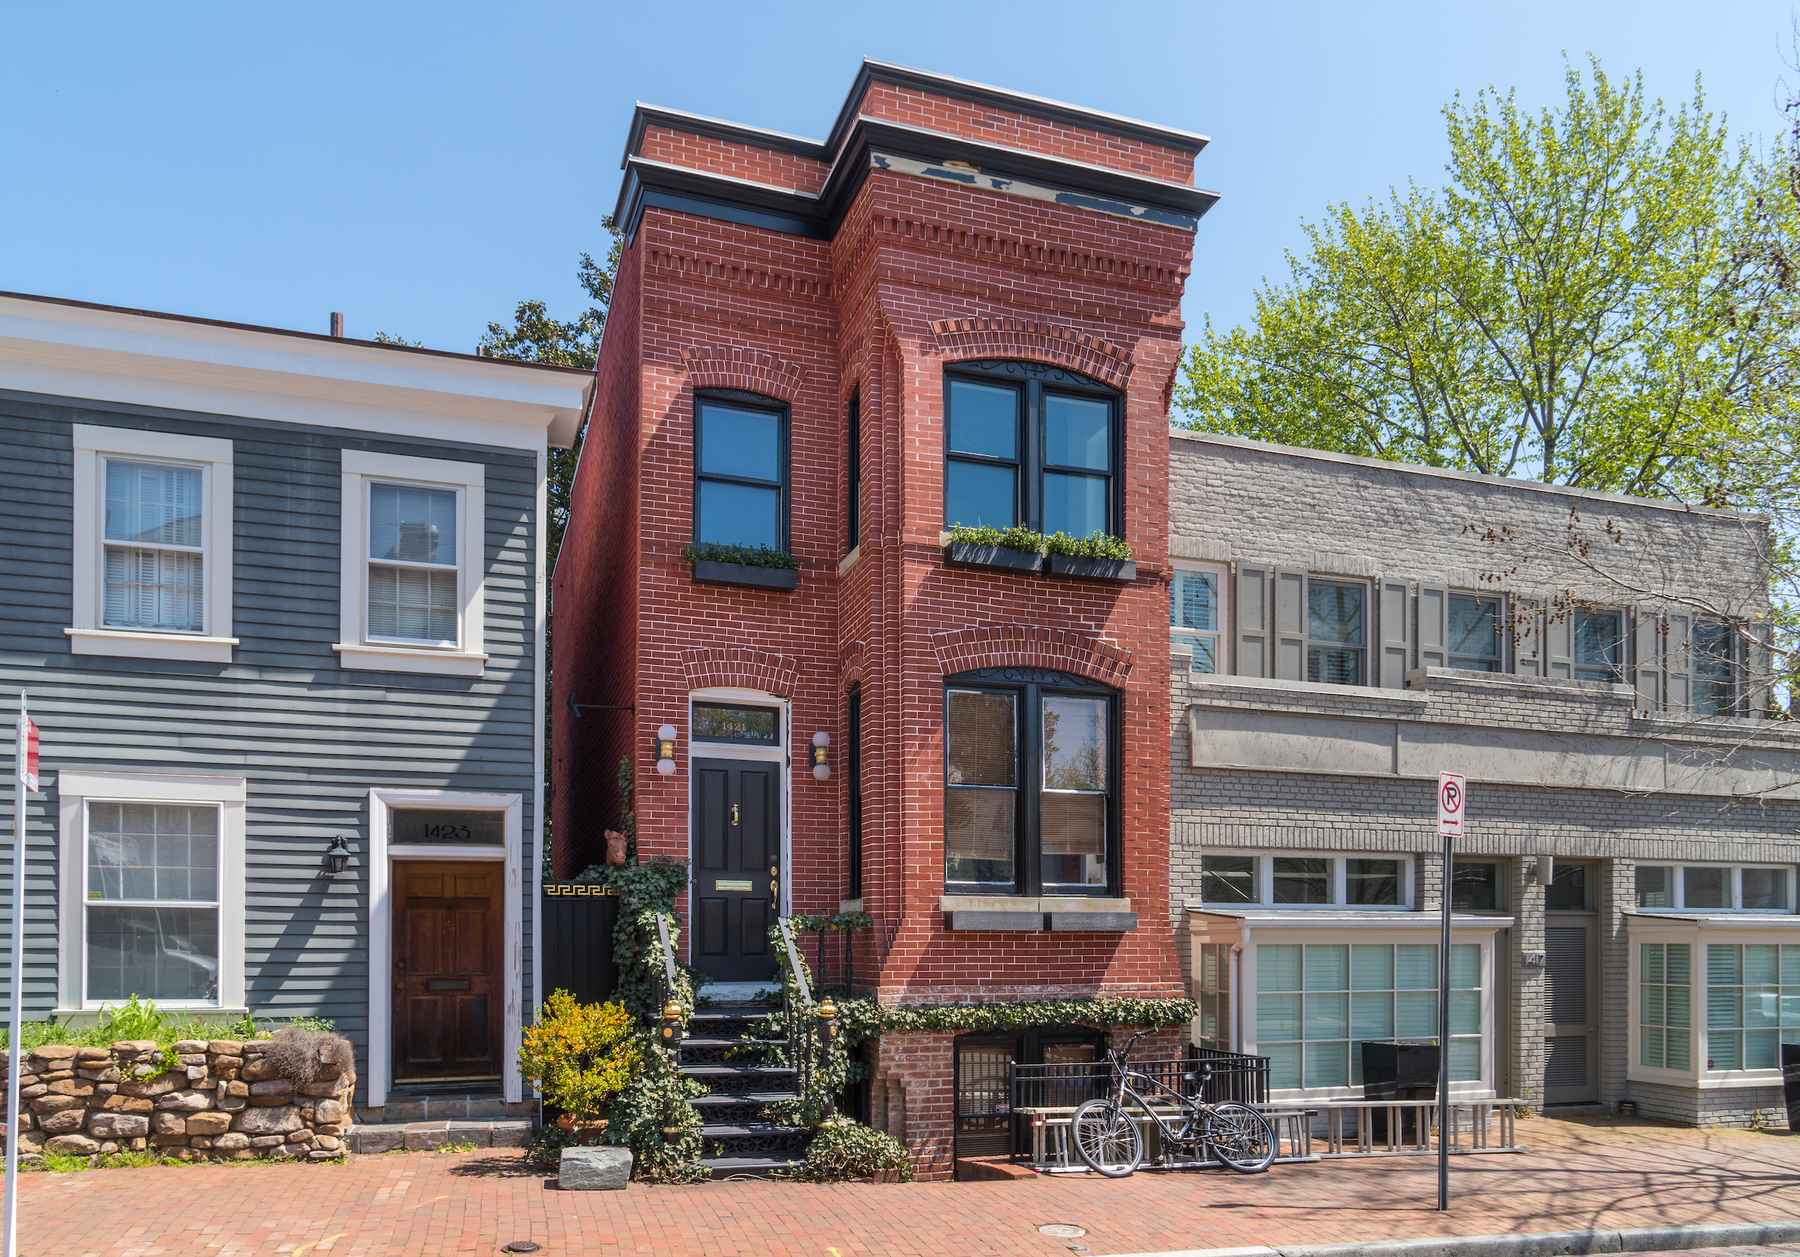 1421 28th Street, NW